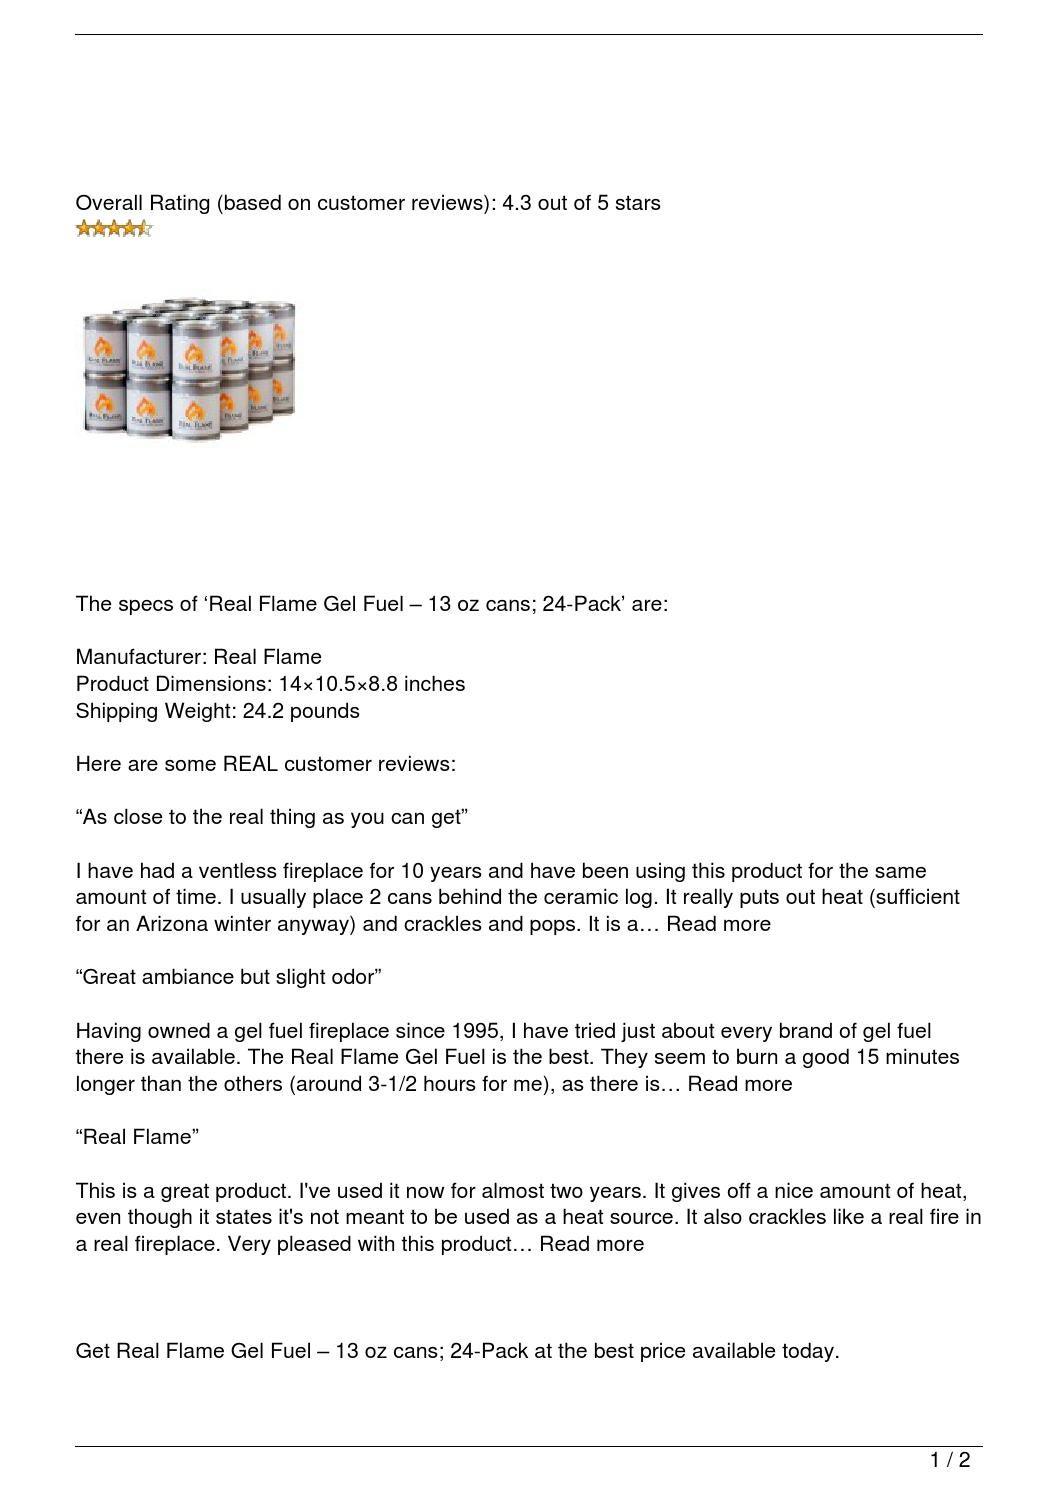 Real Flame Gel Fuel 8211 13 Oz Cans 24 Pack Review By